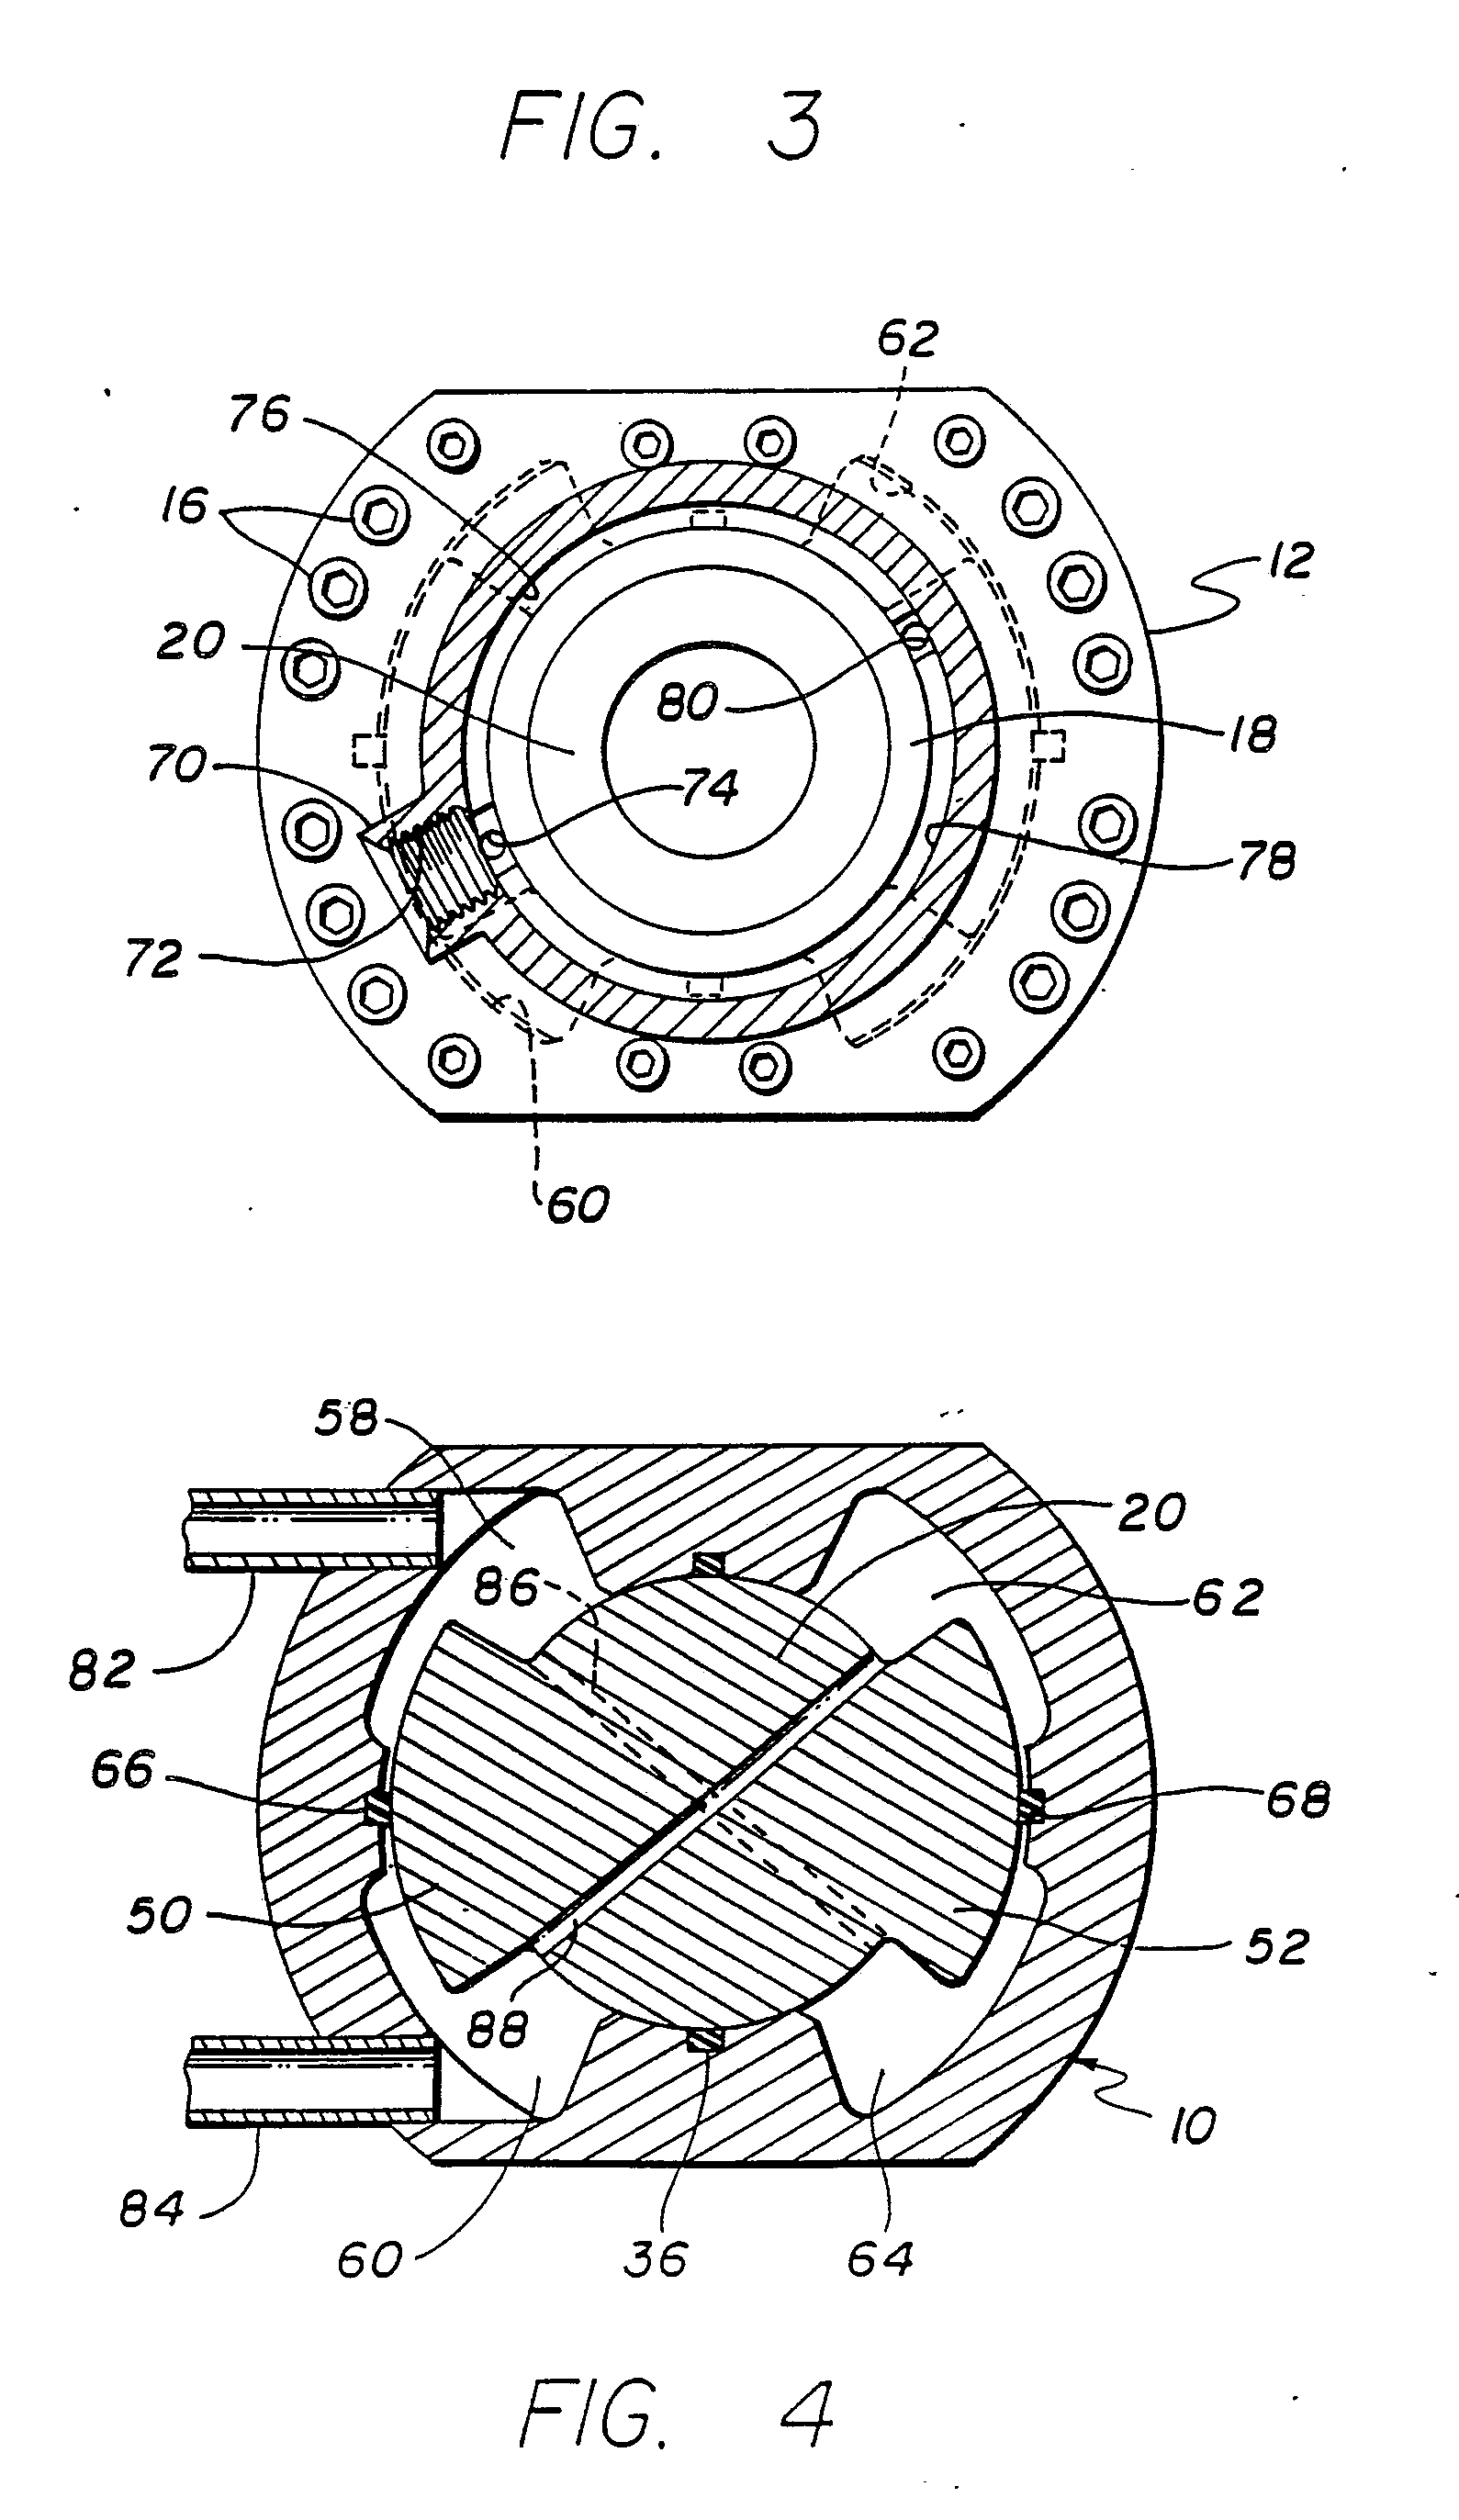 Rotary Vane Hydraulic Actuator Patent 0248986 Car Brakes Diagram Displaying 15 Images For Toolbar Drawing